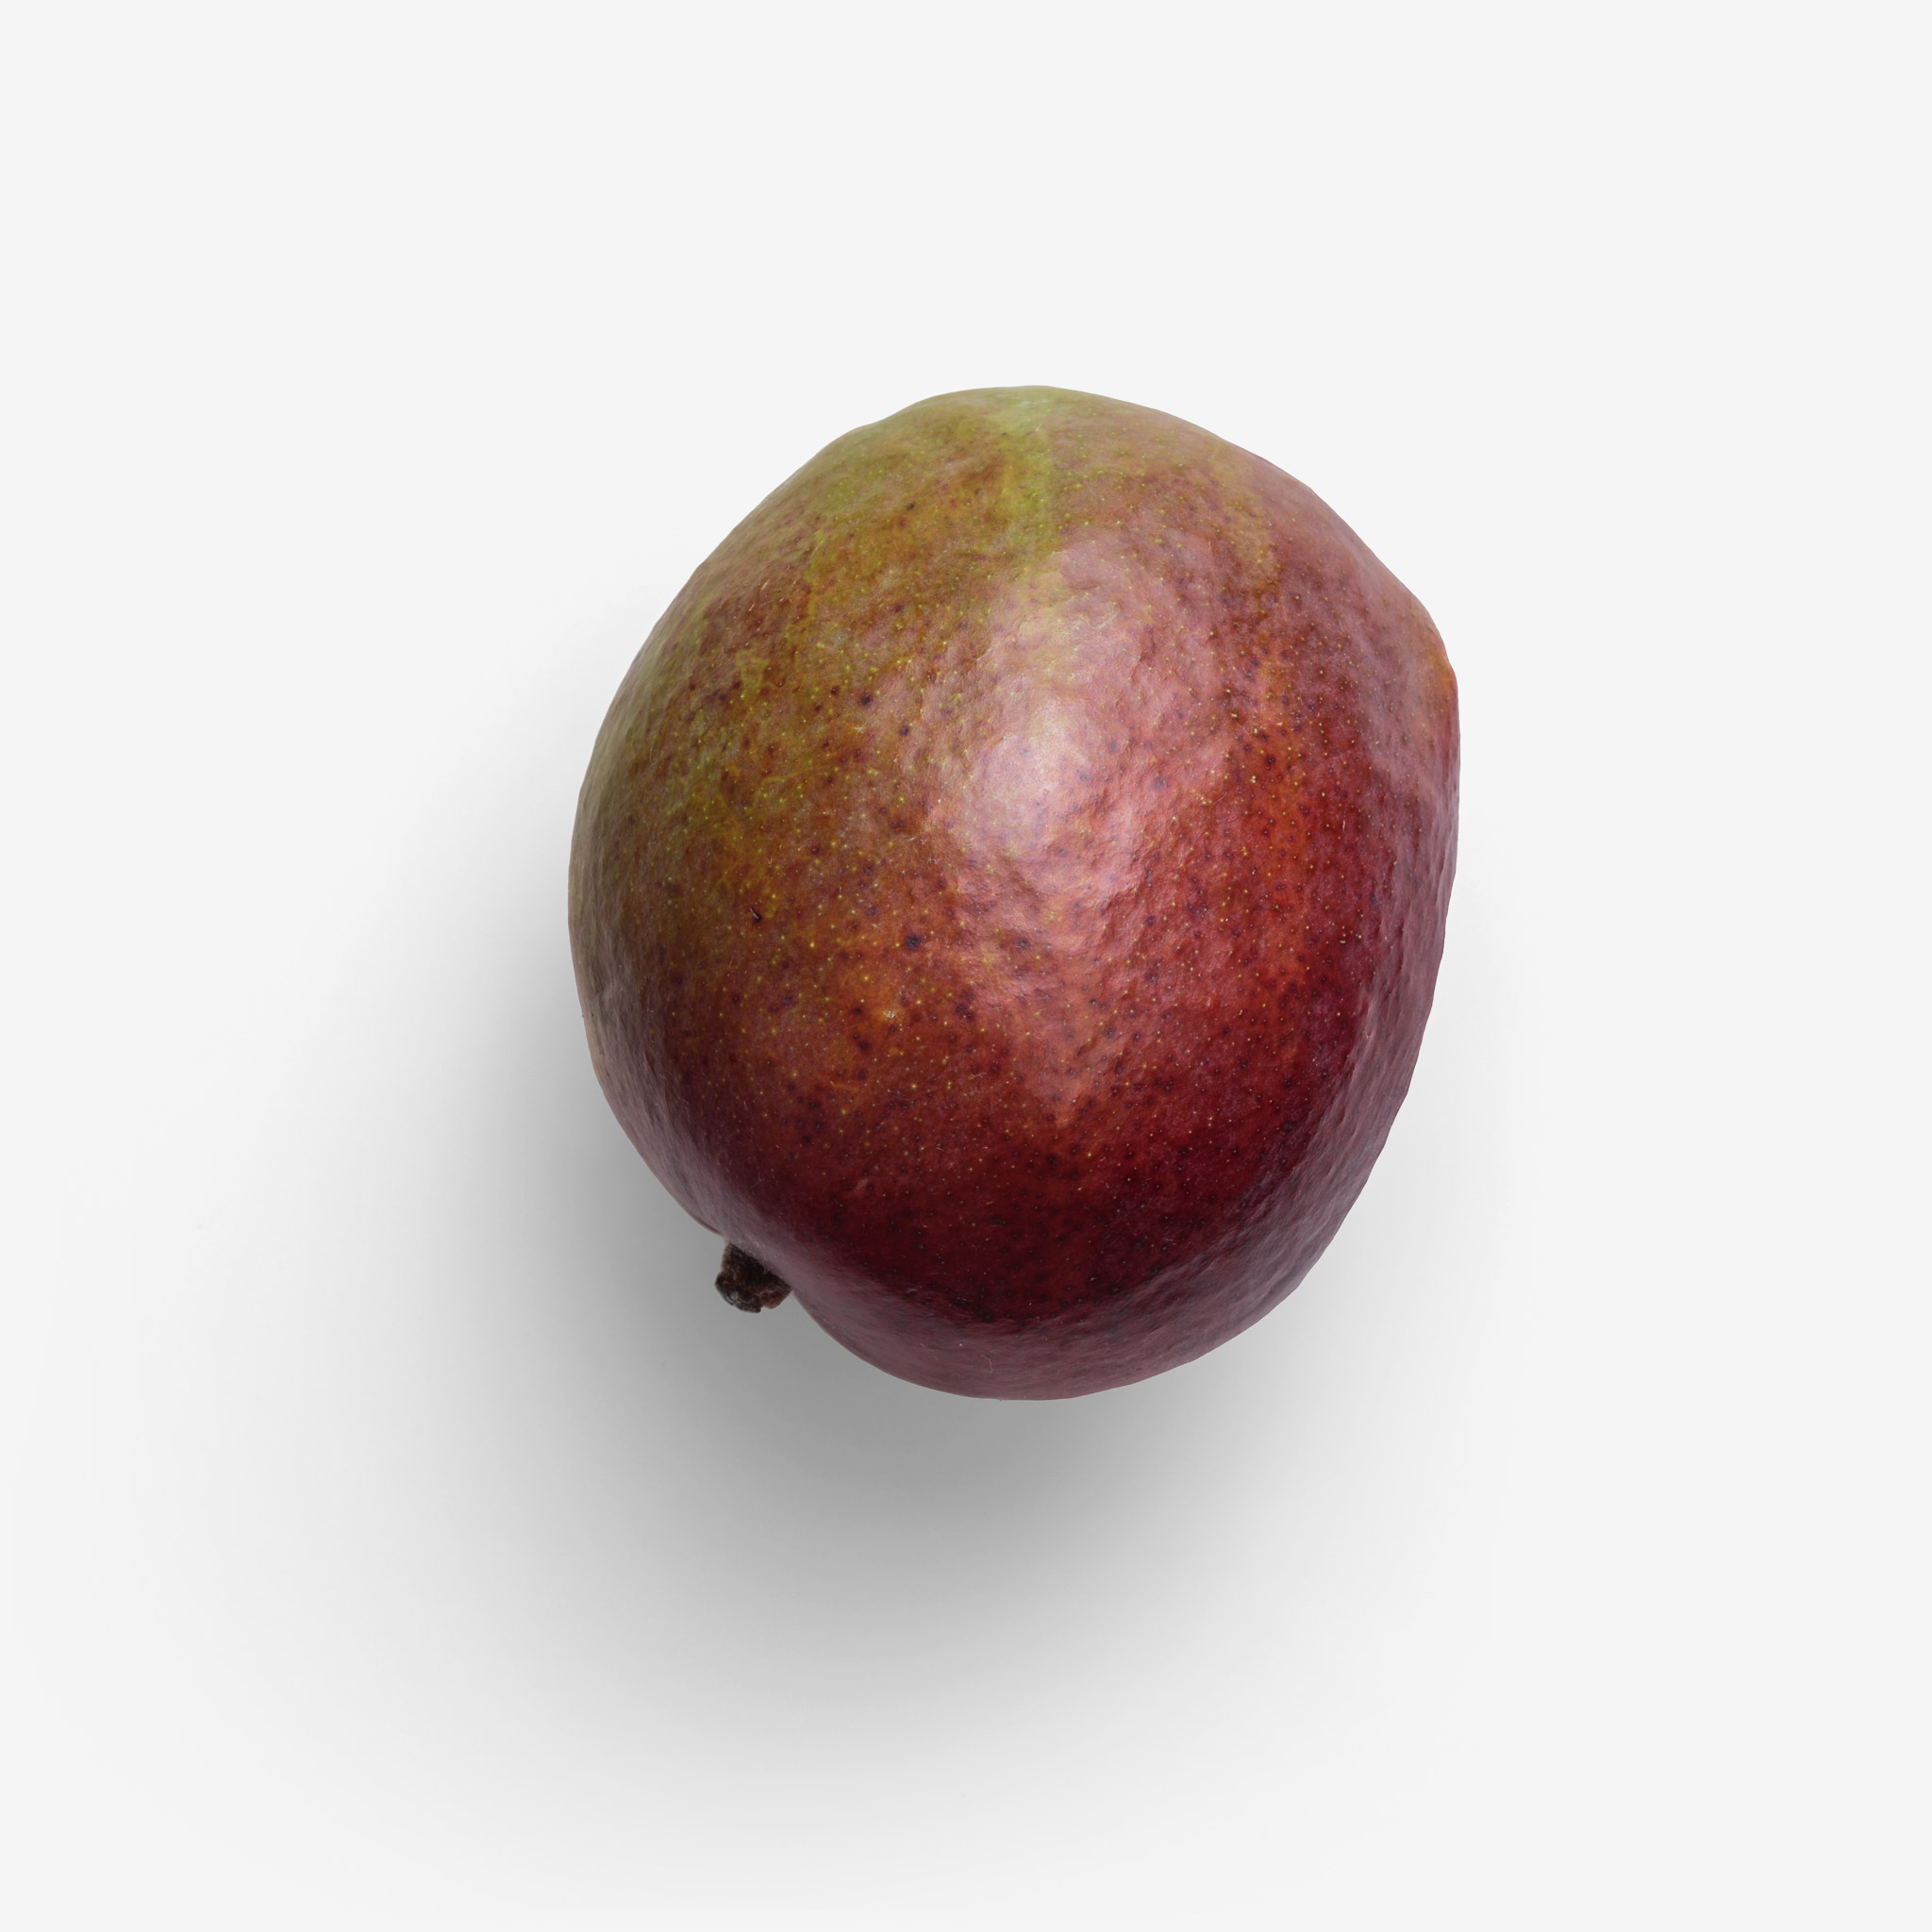 Mango image asset with transparent background